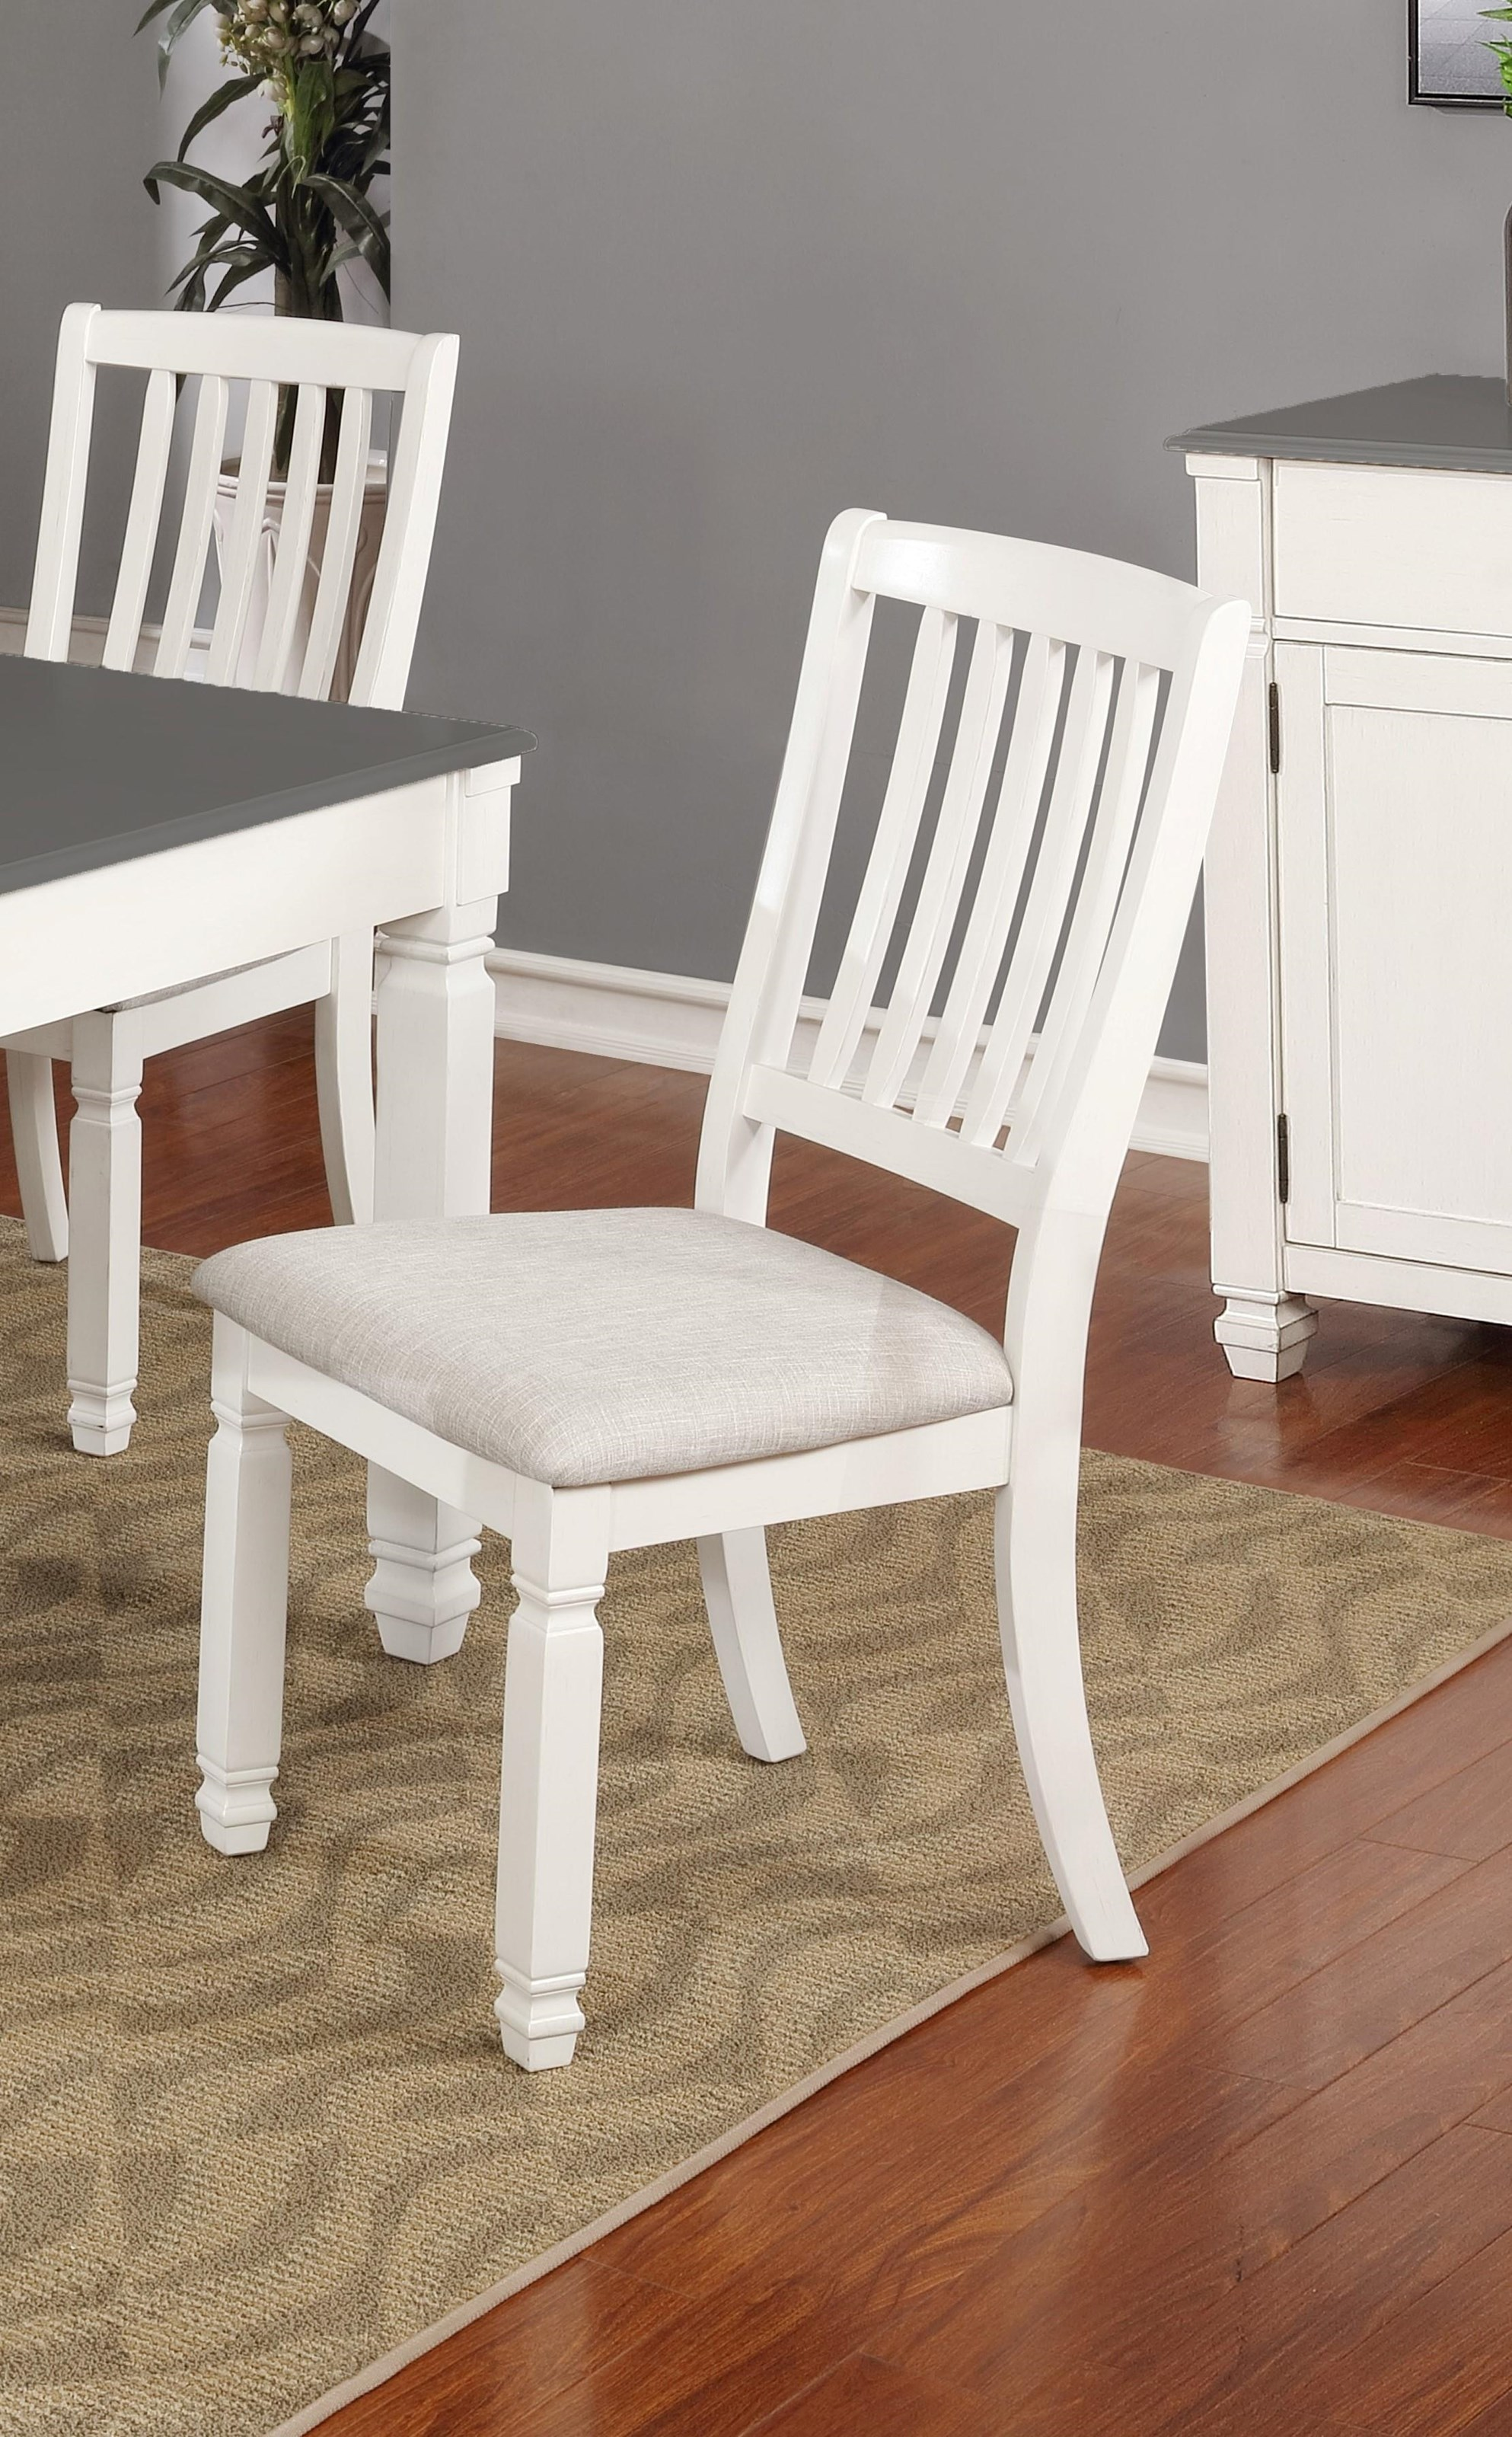 C1735 Dinette Chair by Lifestyle at Furniture Fair - North Carolina